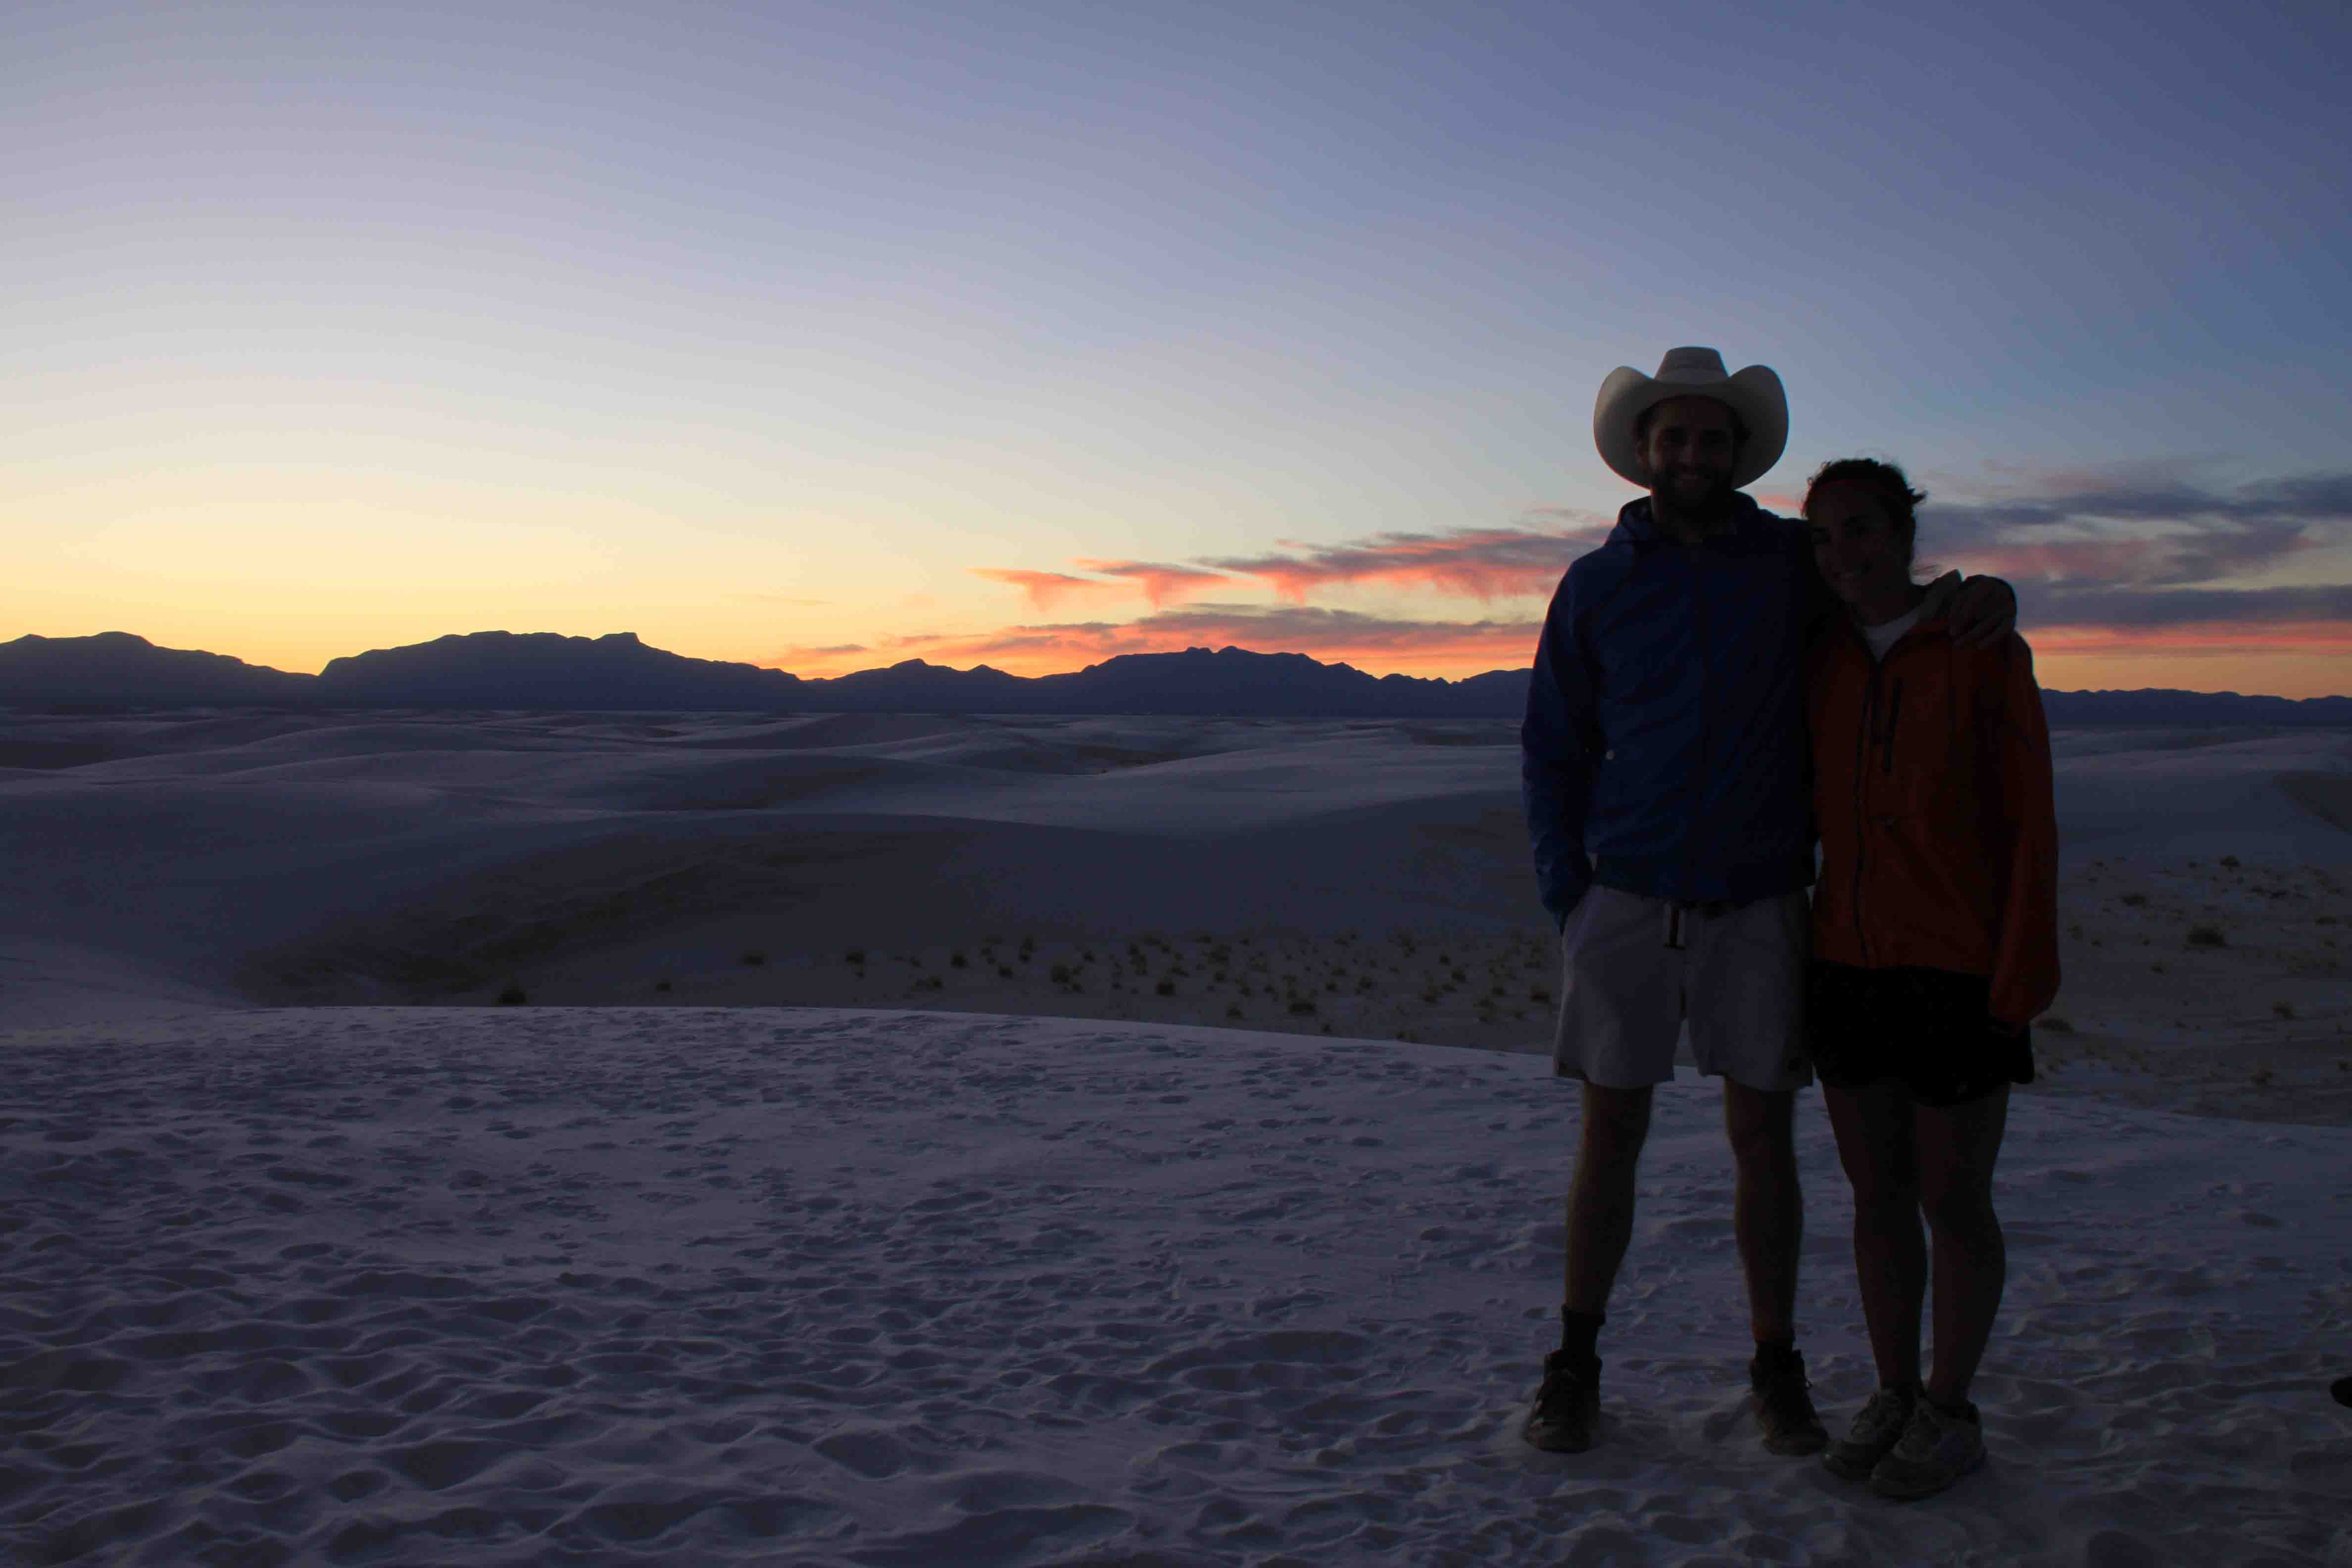 zoe and alex at white sands national monument